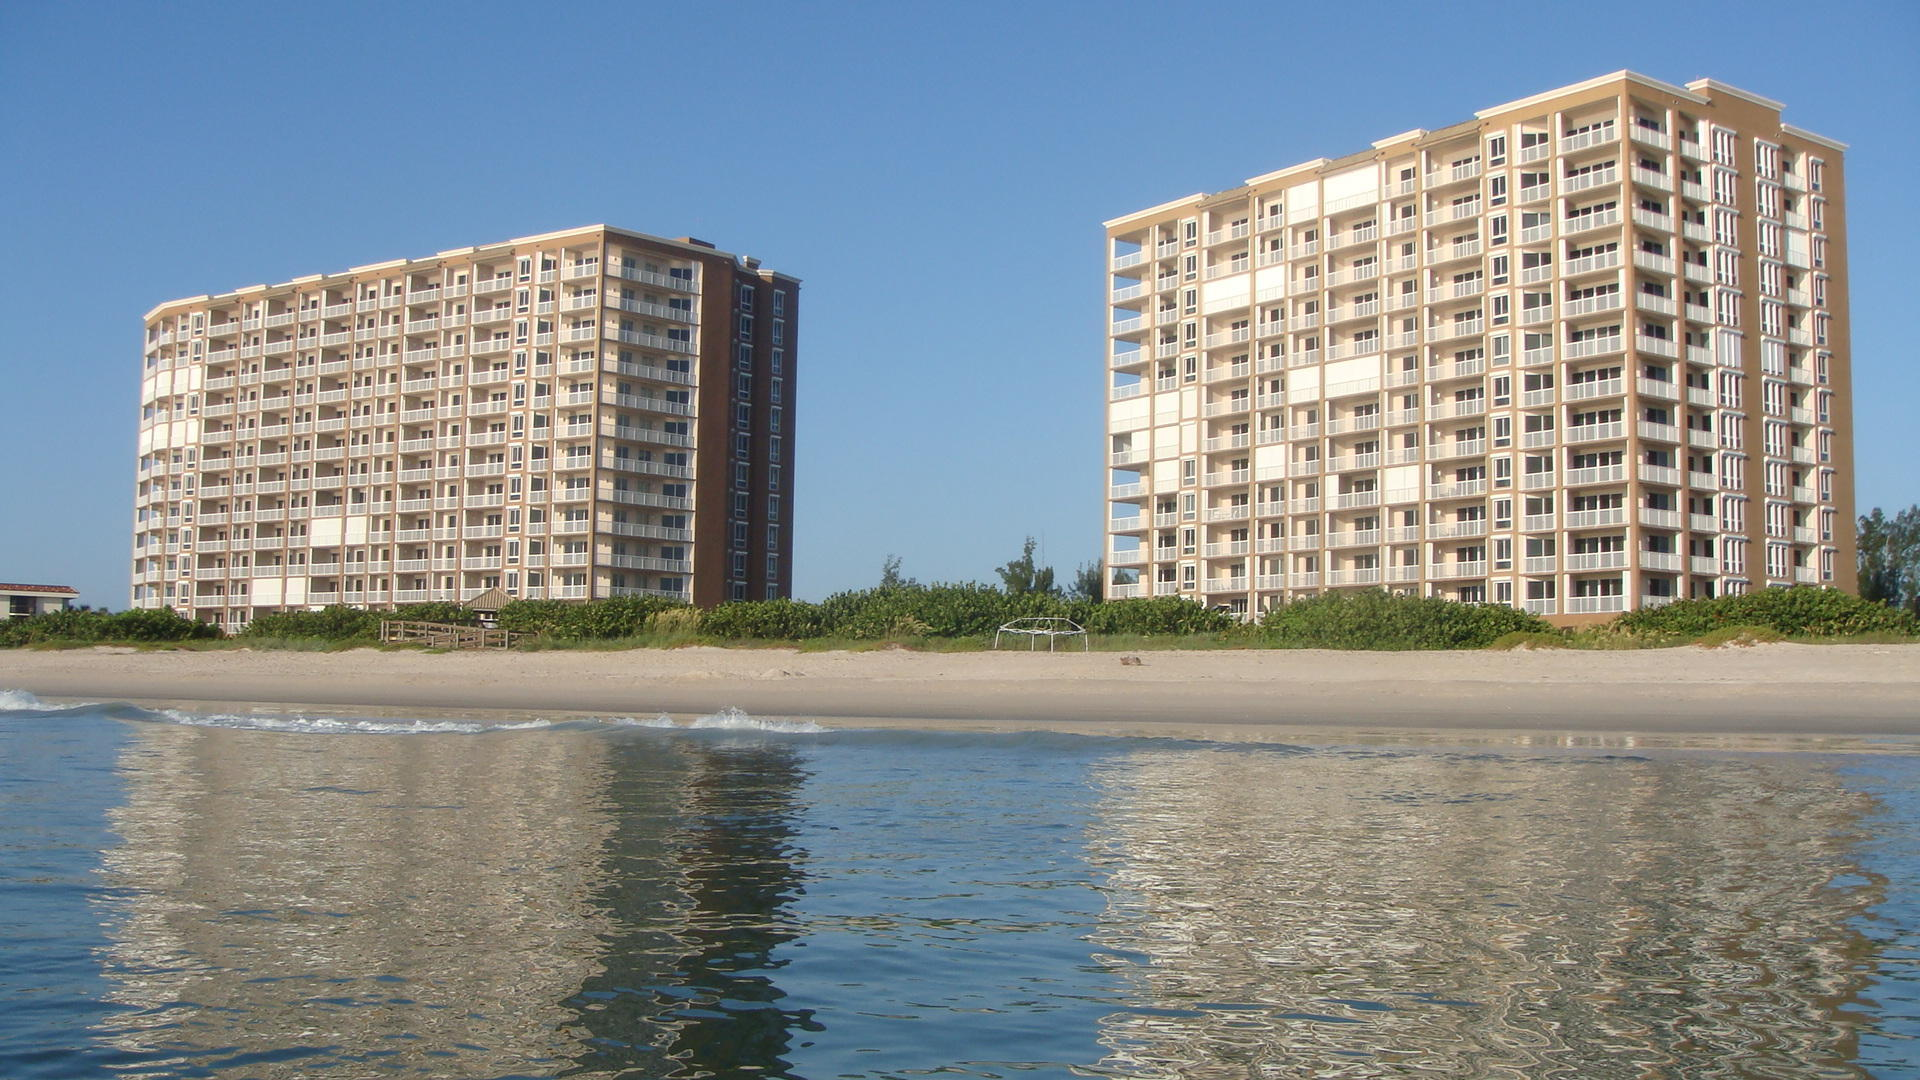 OCEANIQUE OCEANFRONT, A CONDOMINIUM HOMES